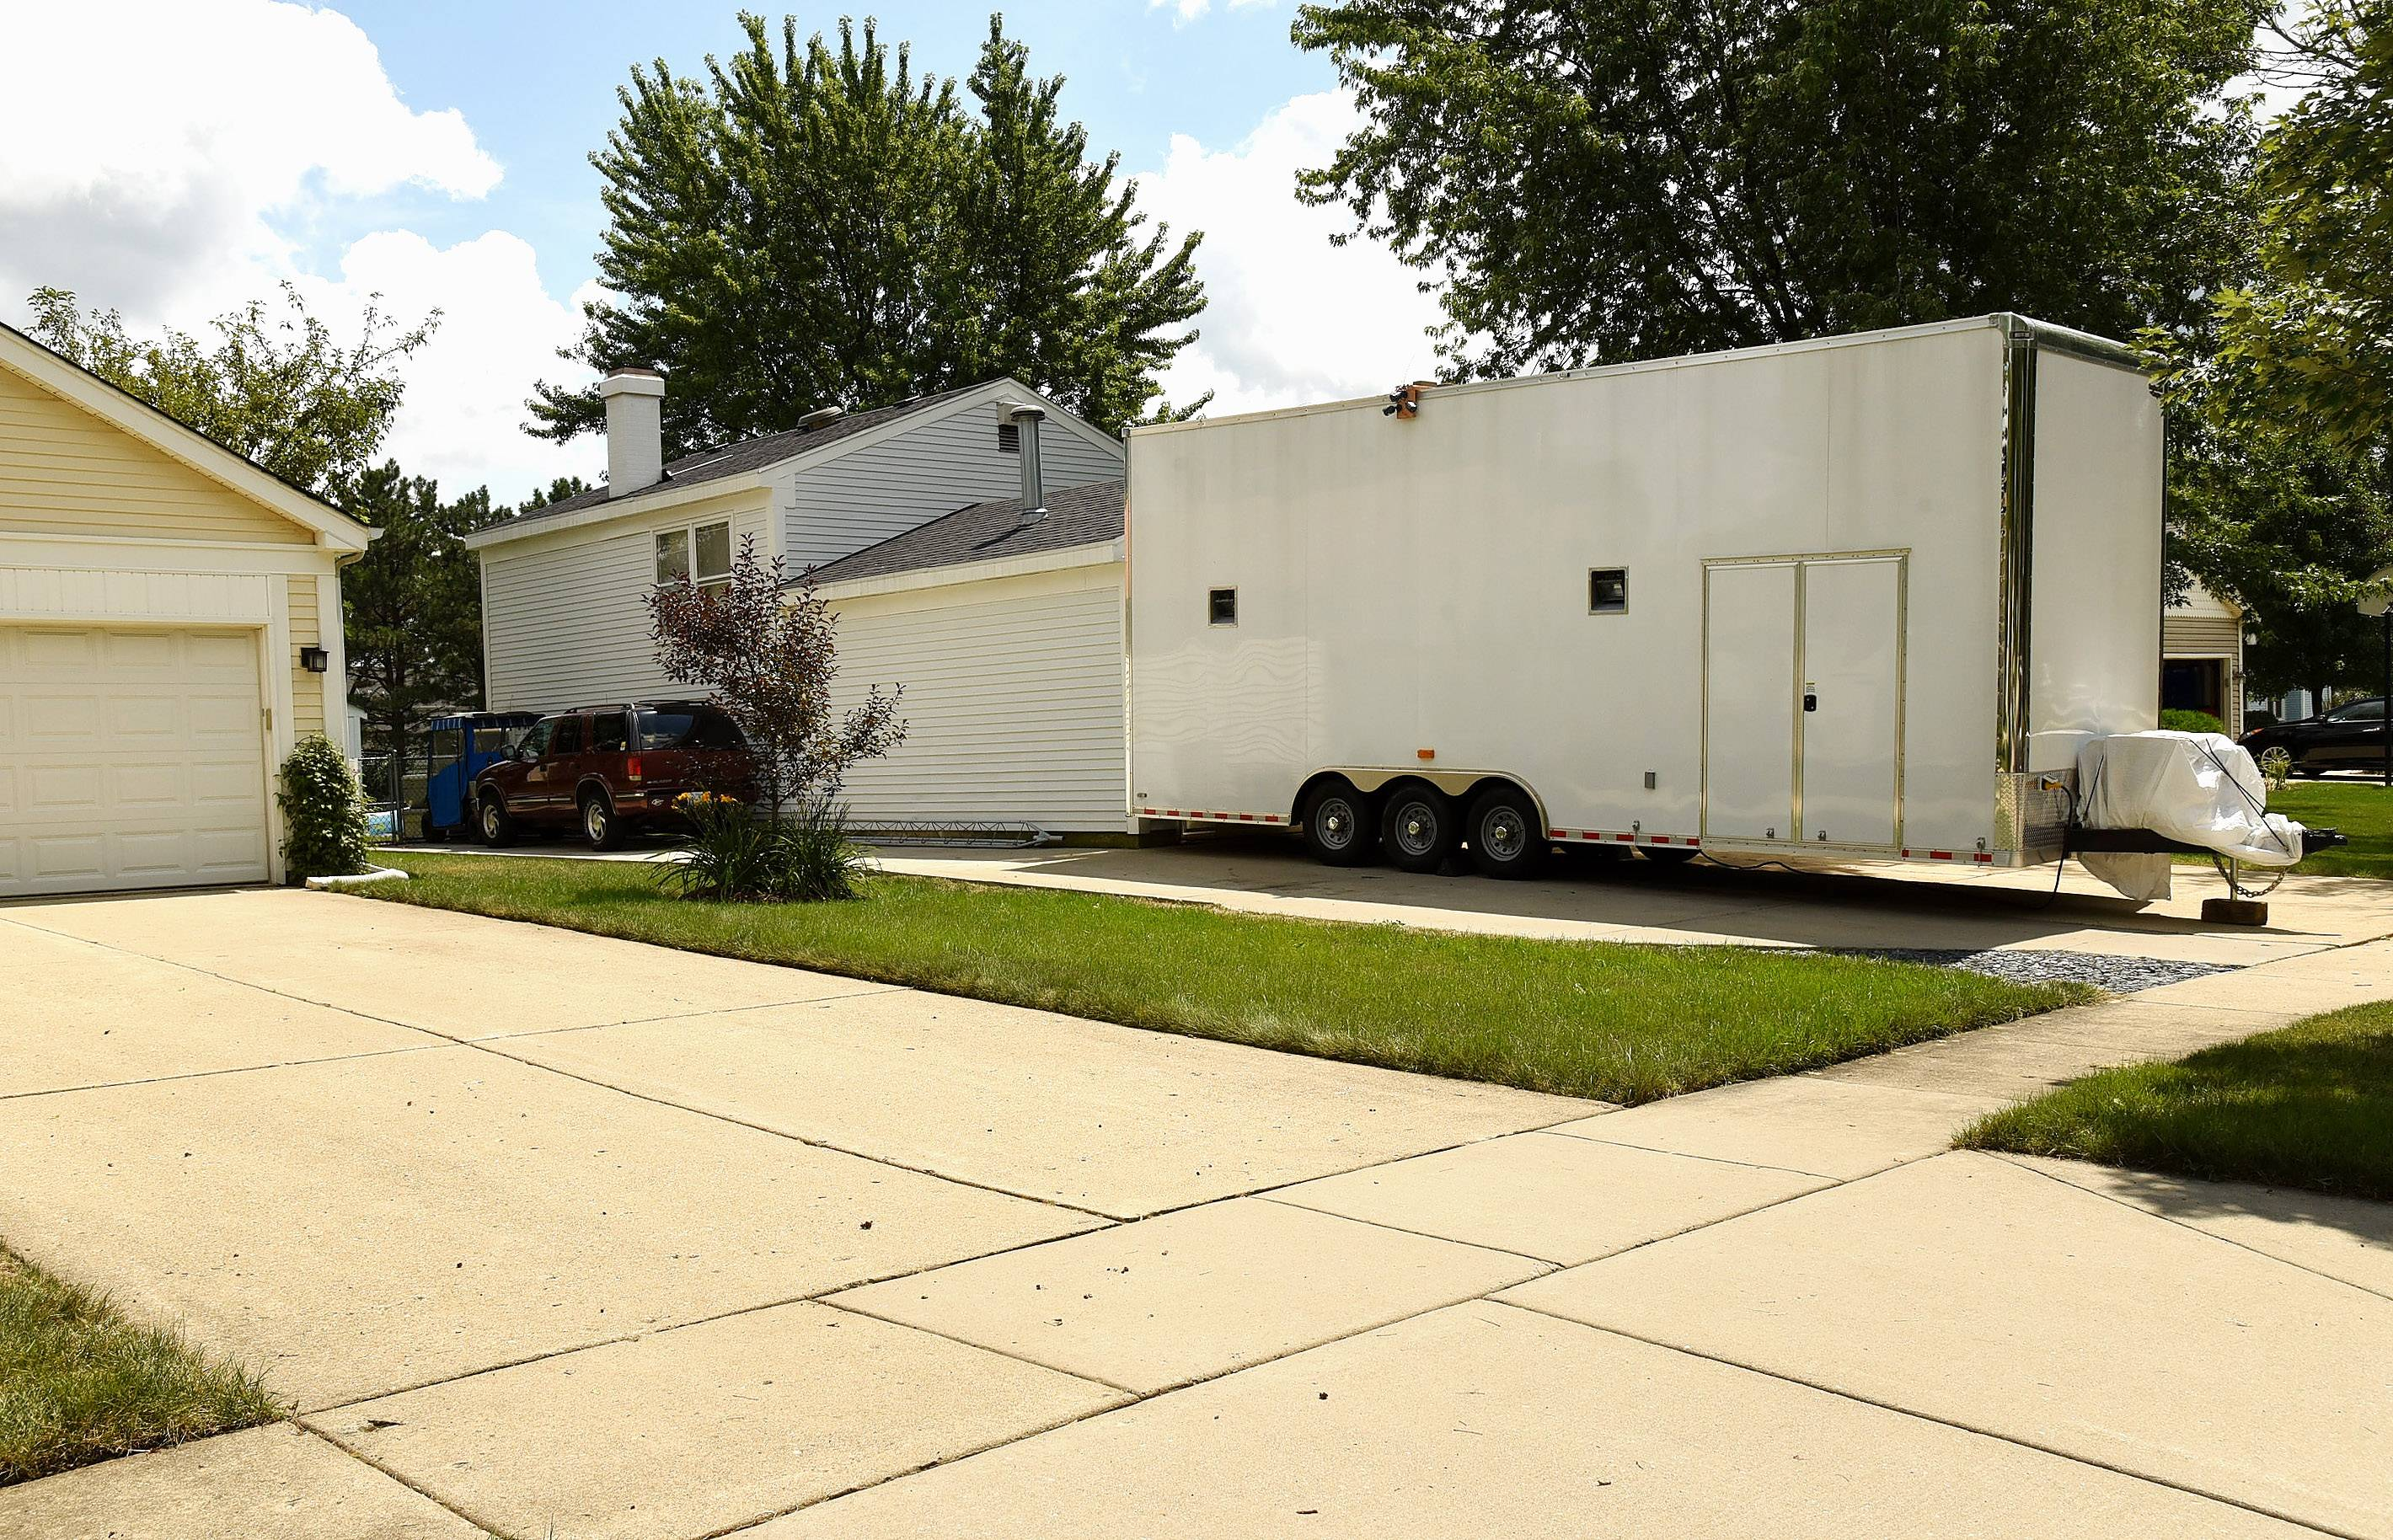 The 13-foot-tall, 28-foot-long hauling trailer in a Schaumburg driveway that sparked a year of debate on whether greater regulation of such trailers is needed.